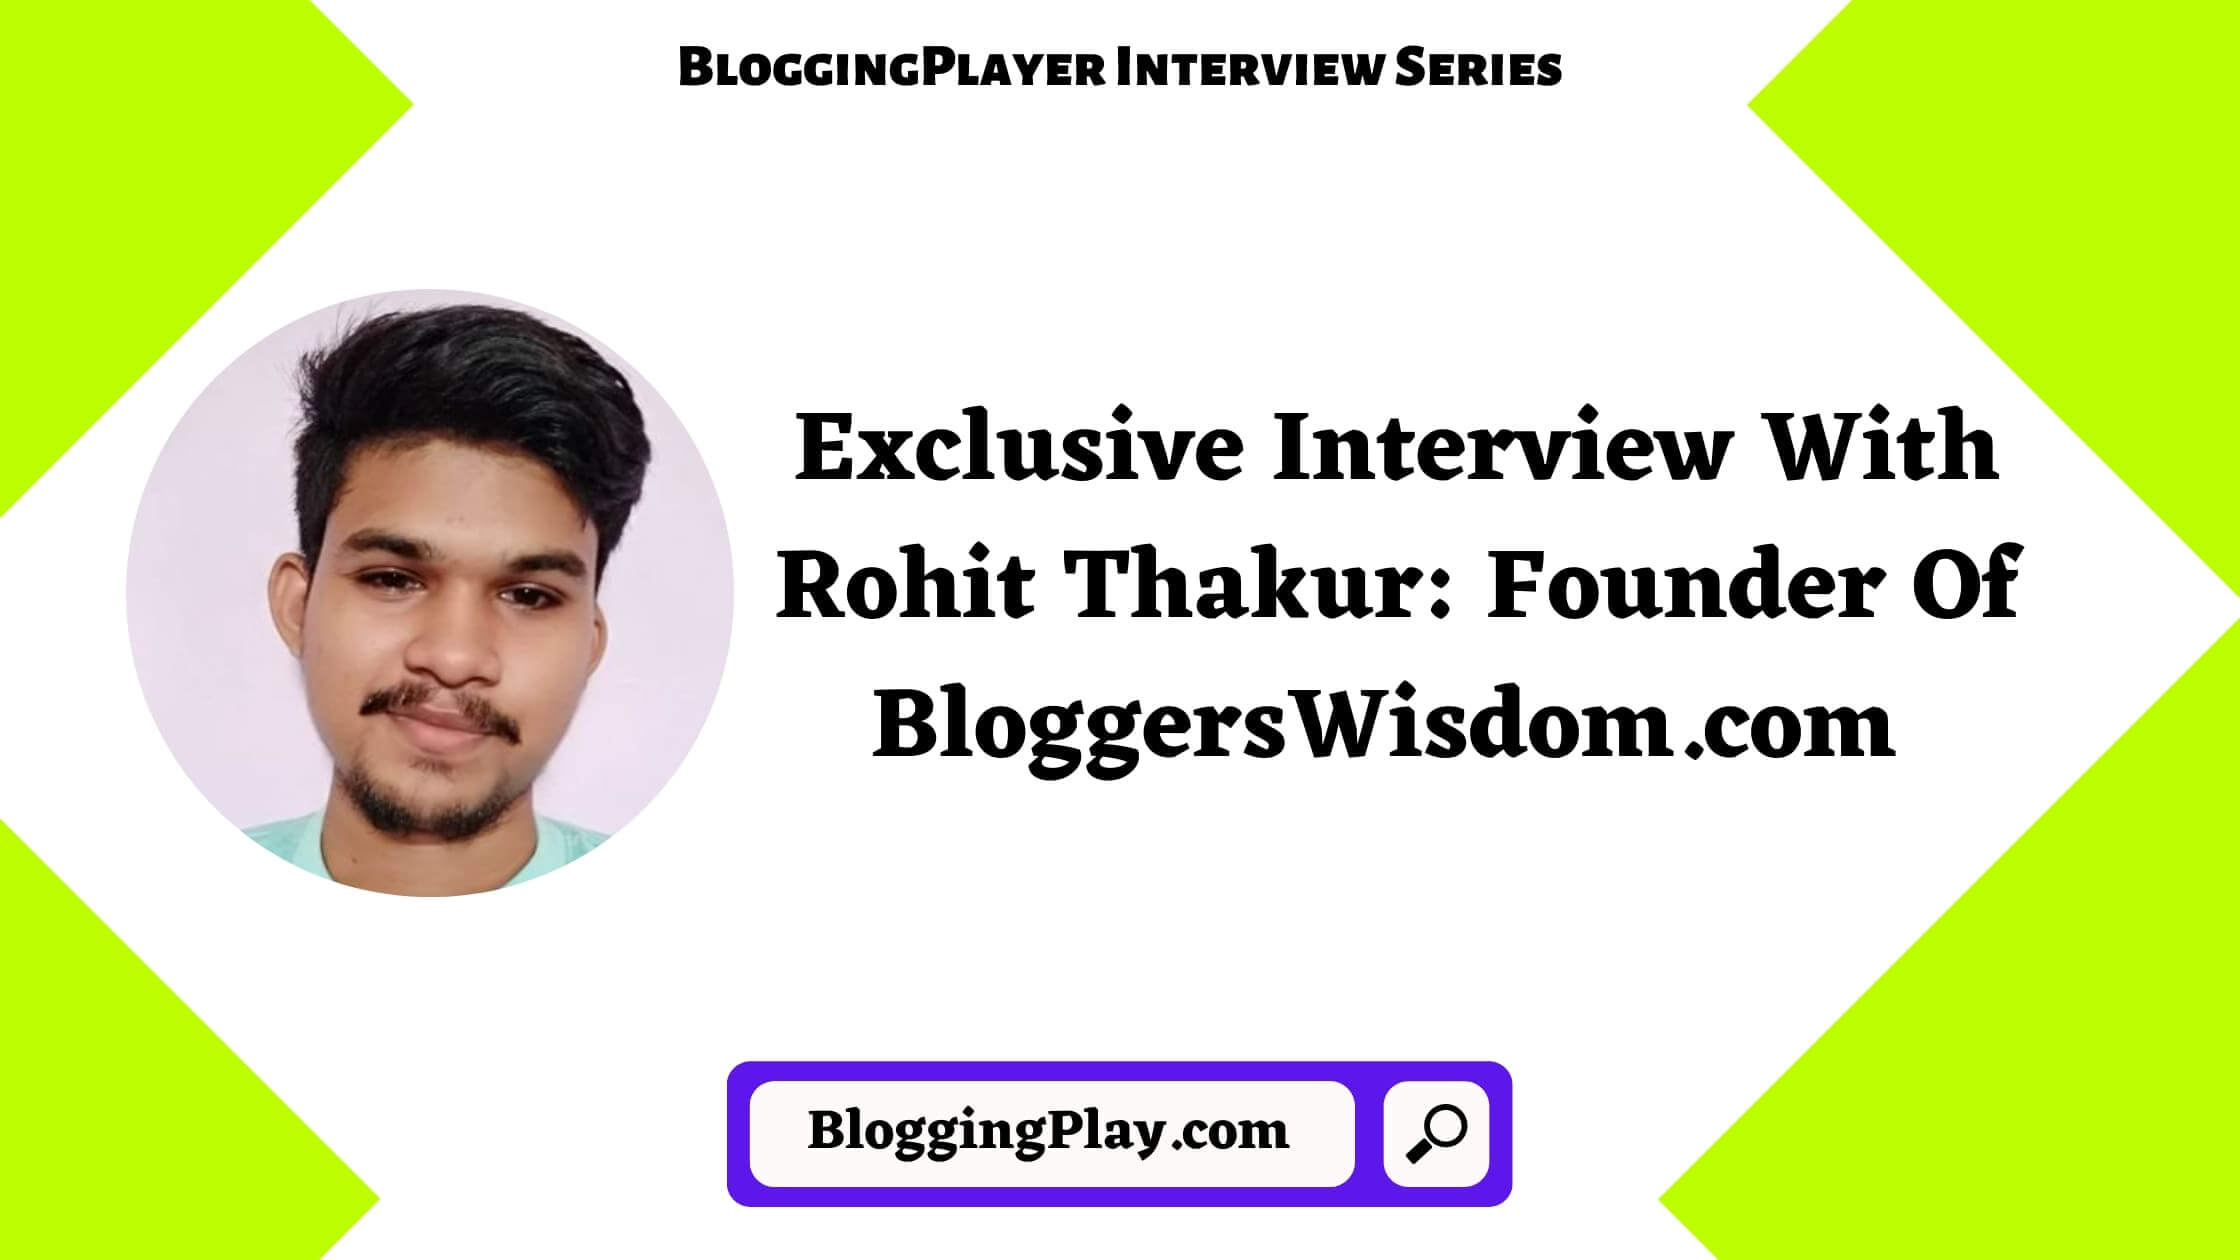 Exclusive Interview With Rohit Thakur